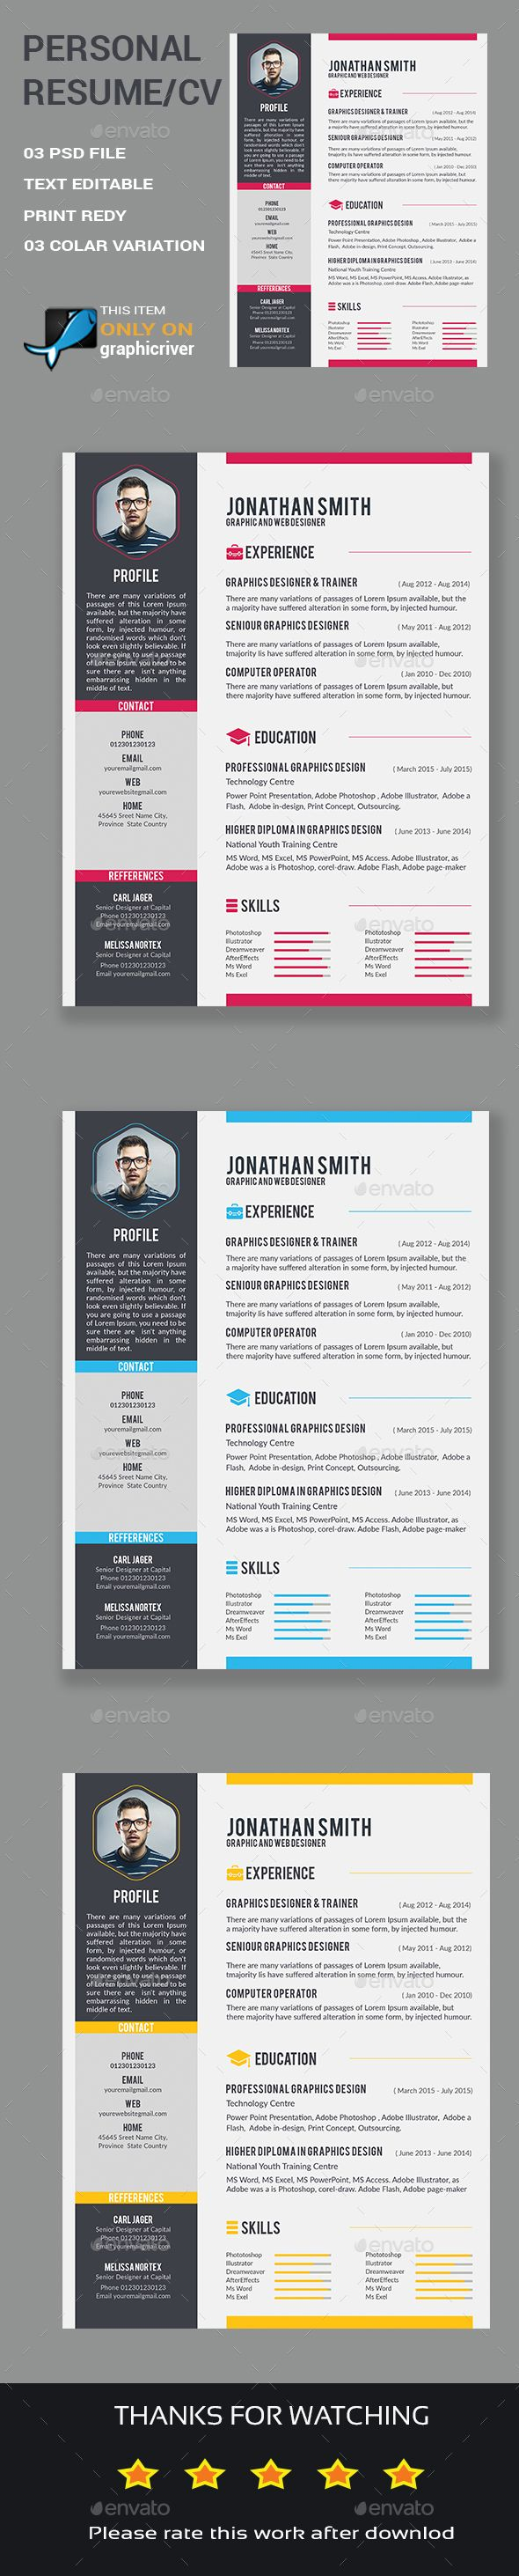 Best Cv Images On   Resume Design Page Layout And